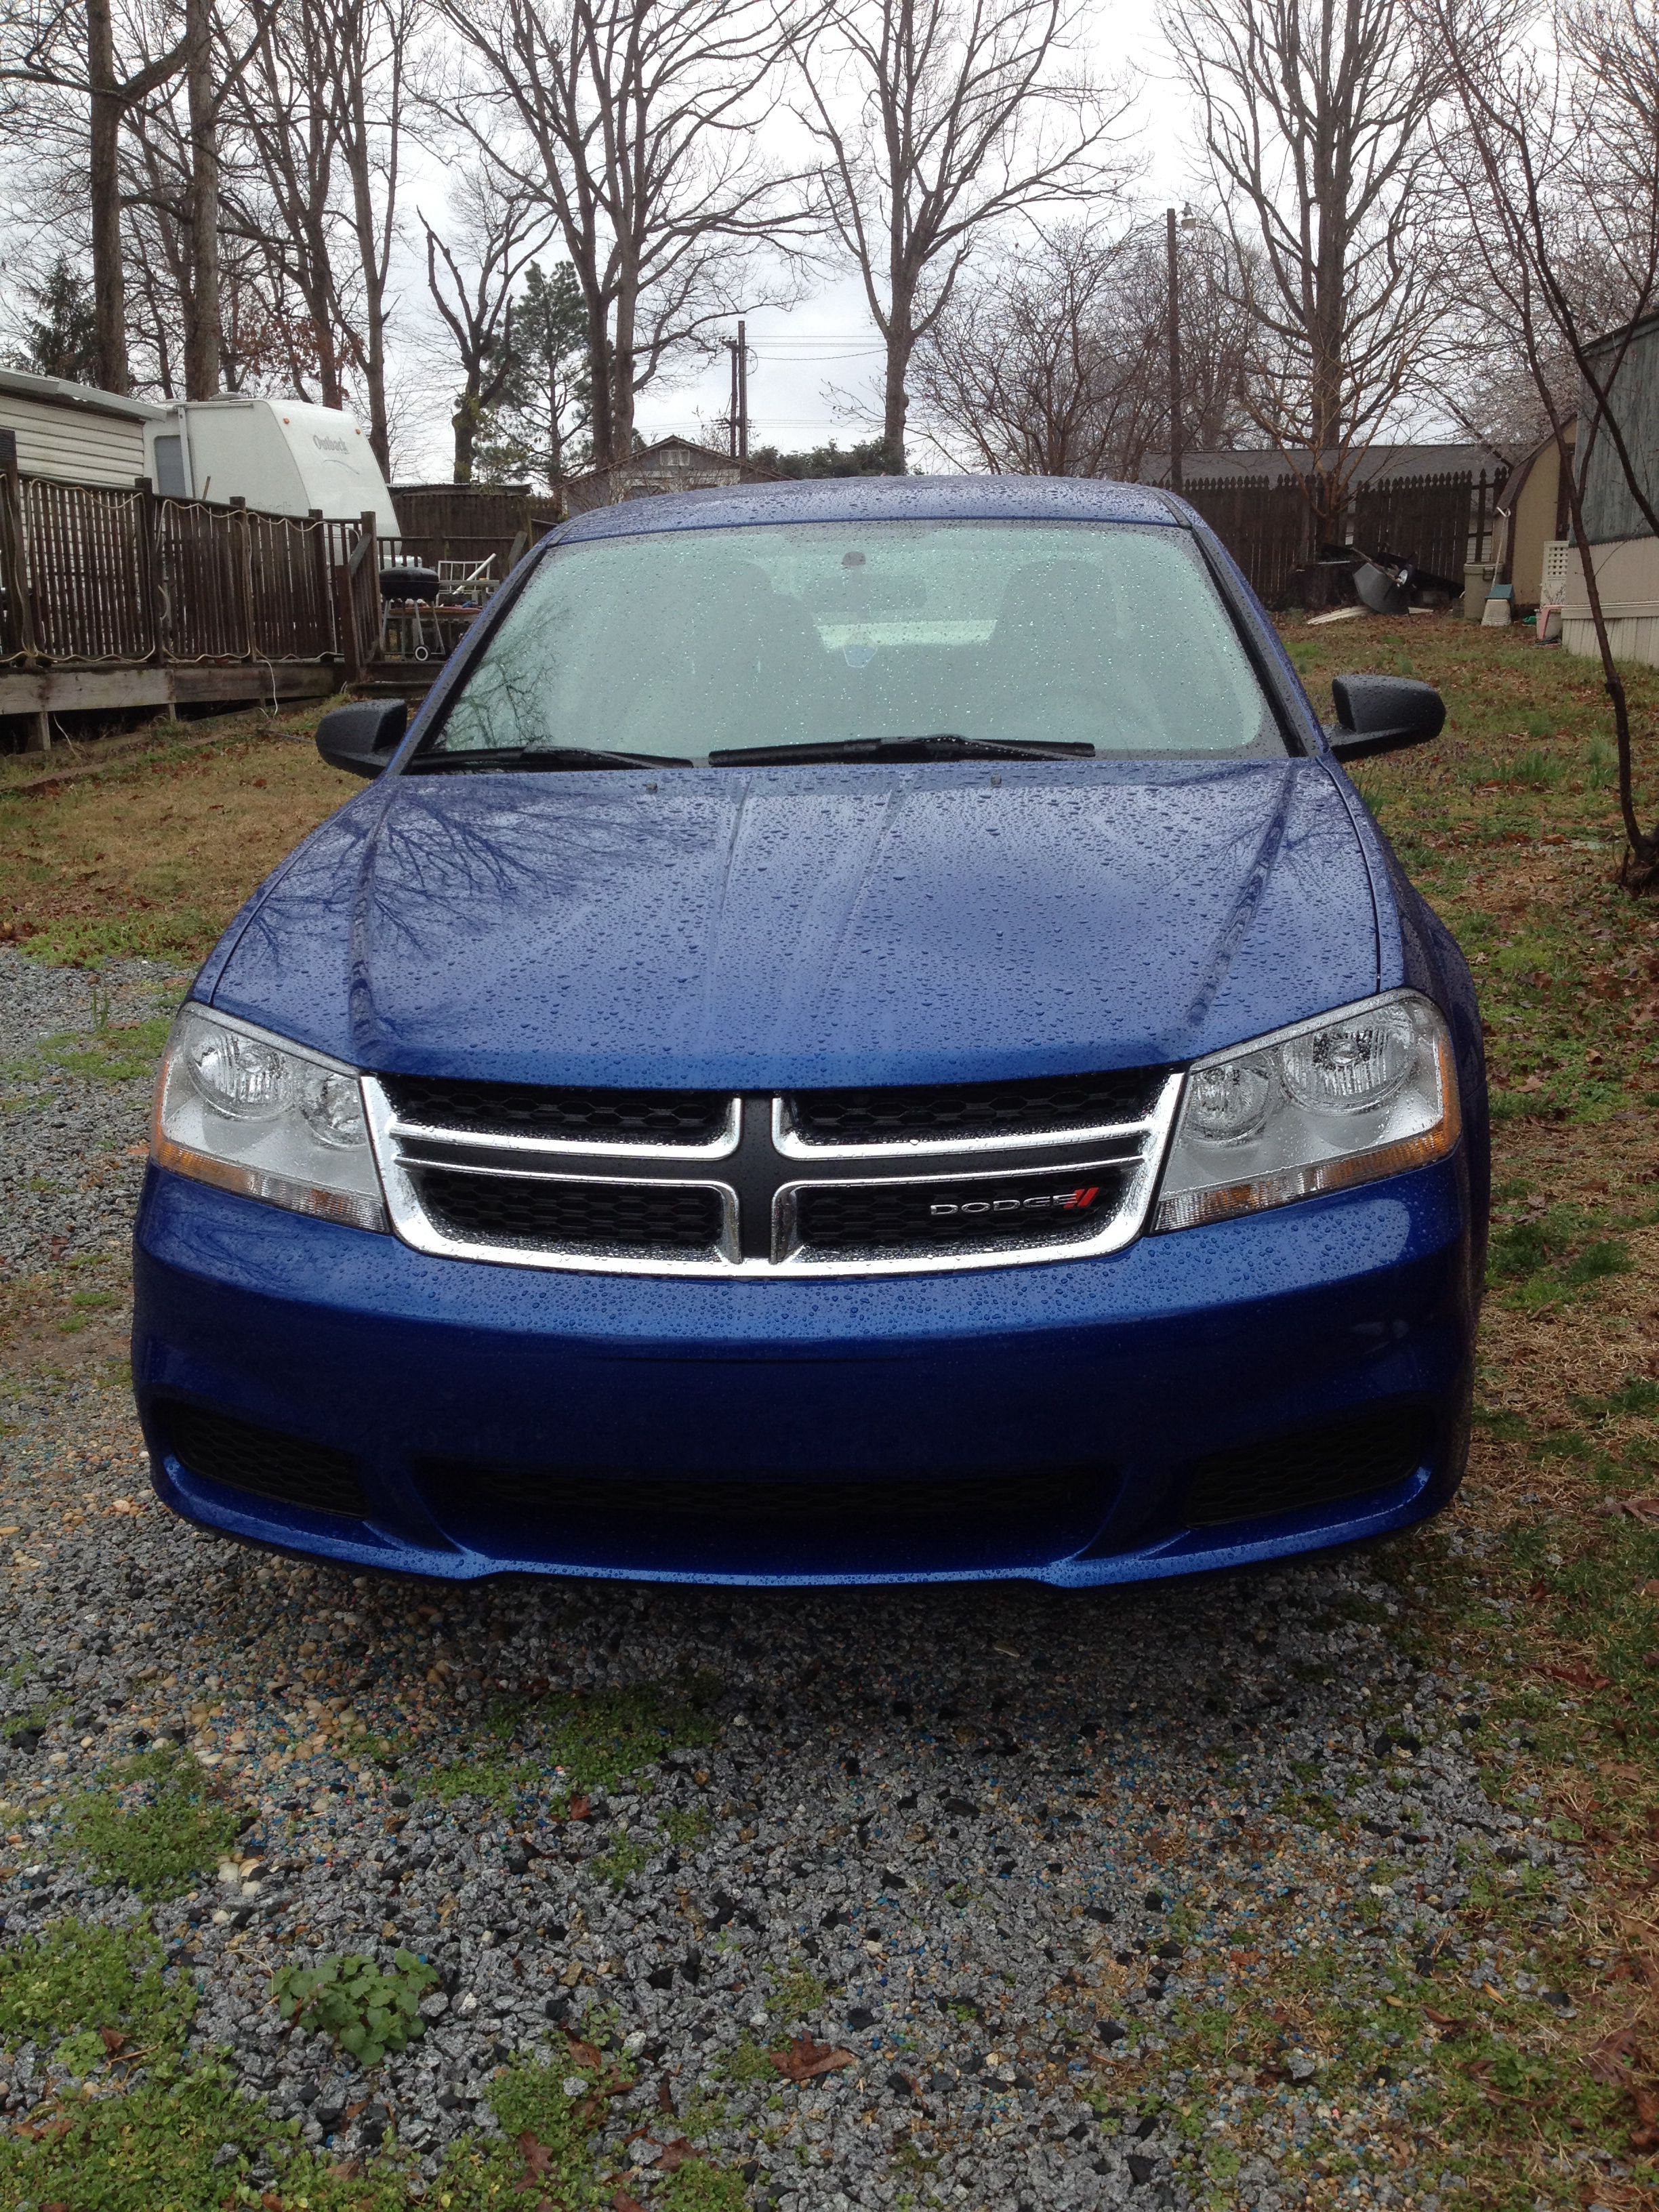 This is my new car. It's a Dodge Avenger. I have decide to give it a name but I don't know what name I should give it. I was thinking maybe Thor. (Even though it's blue).